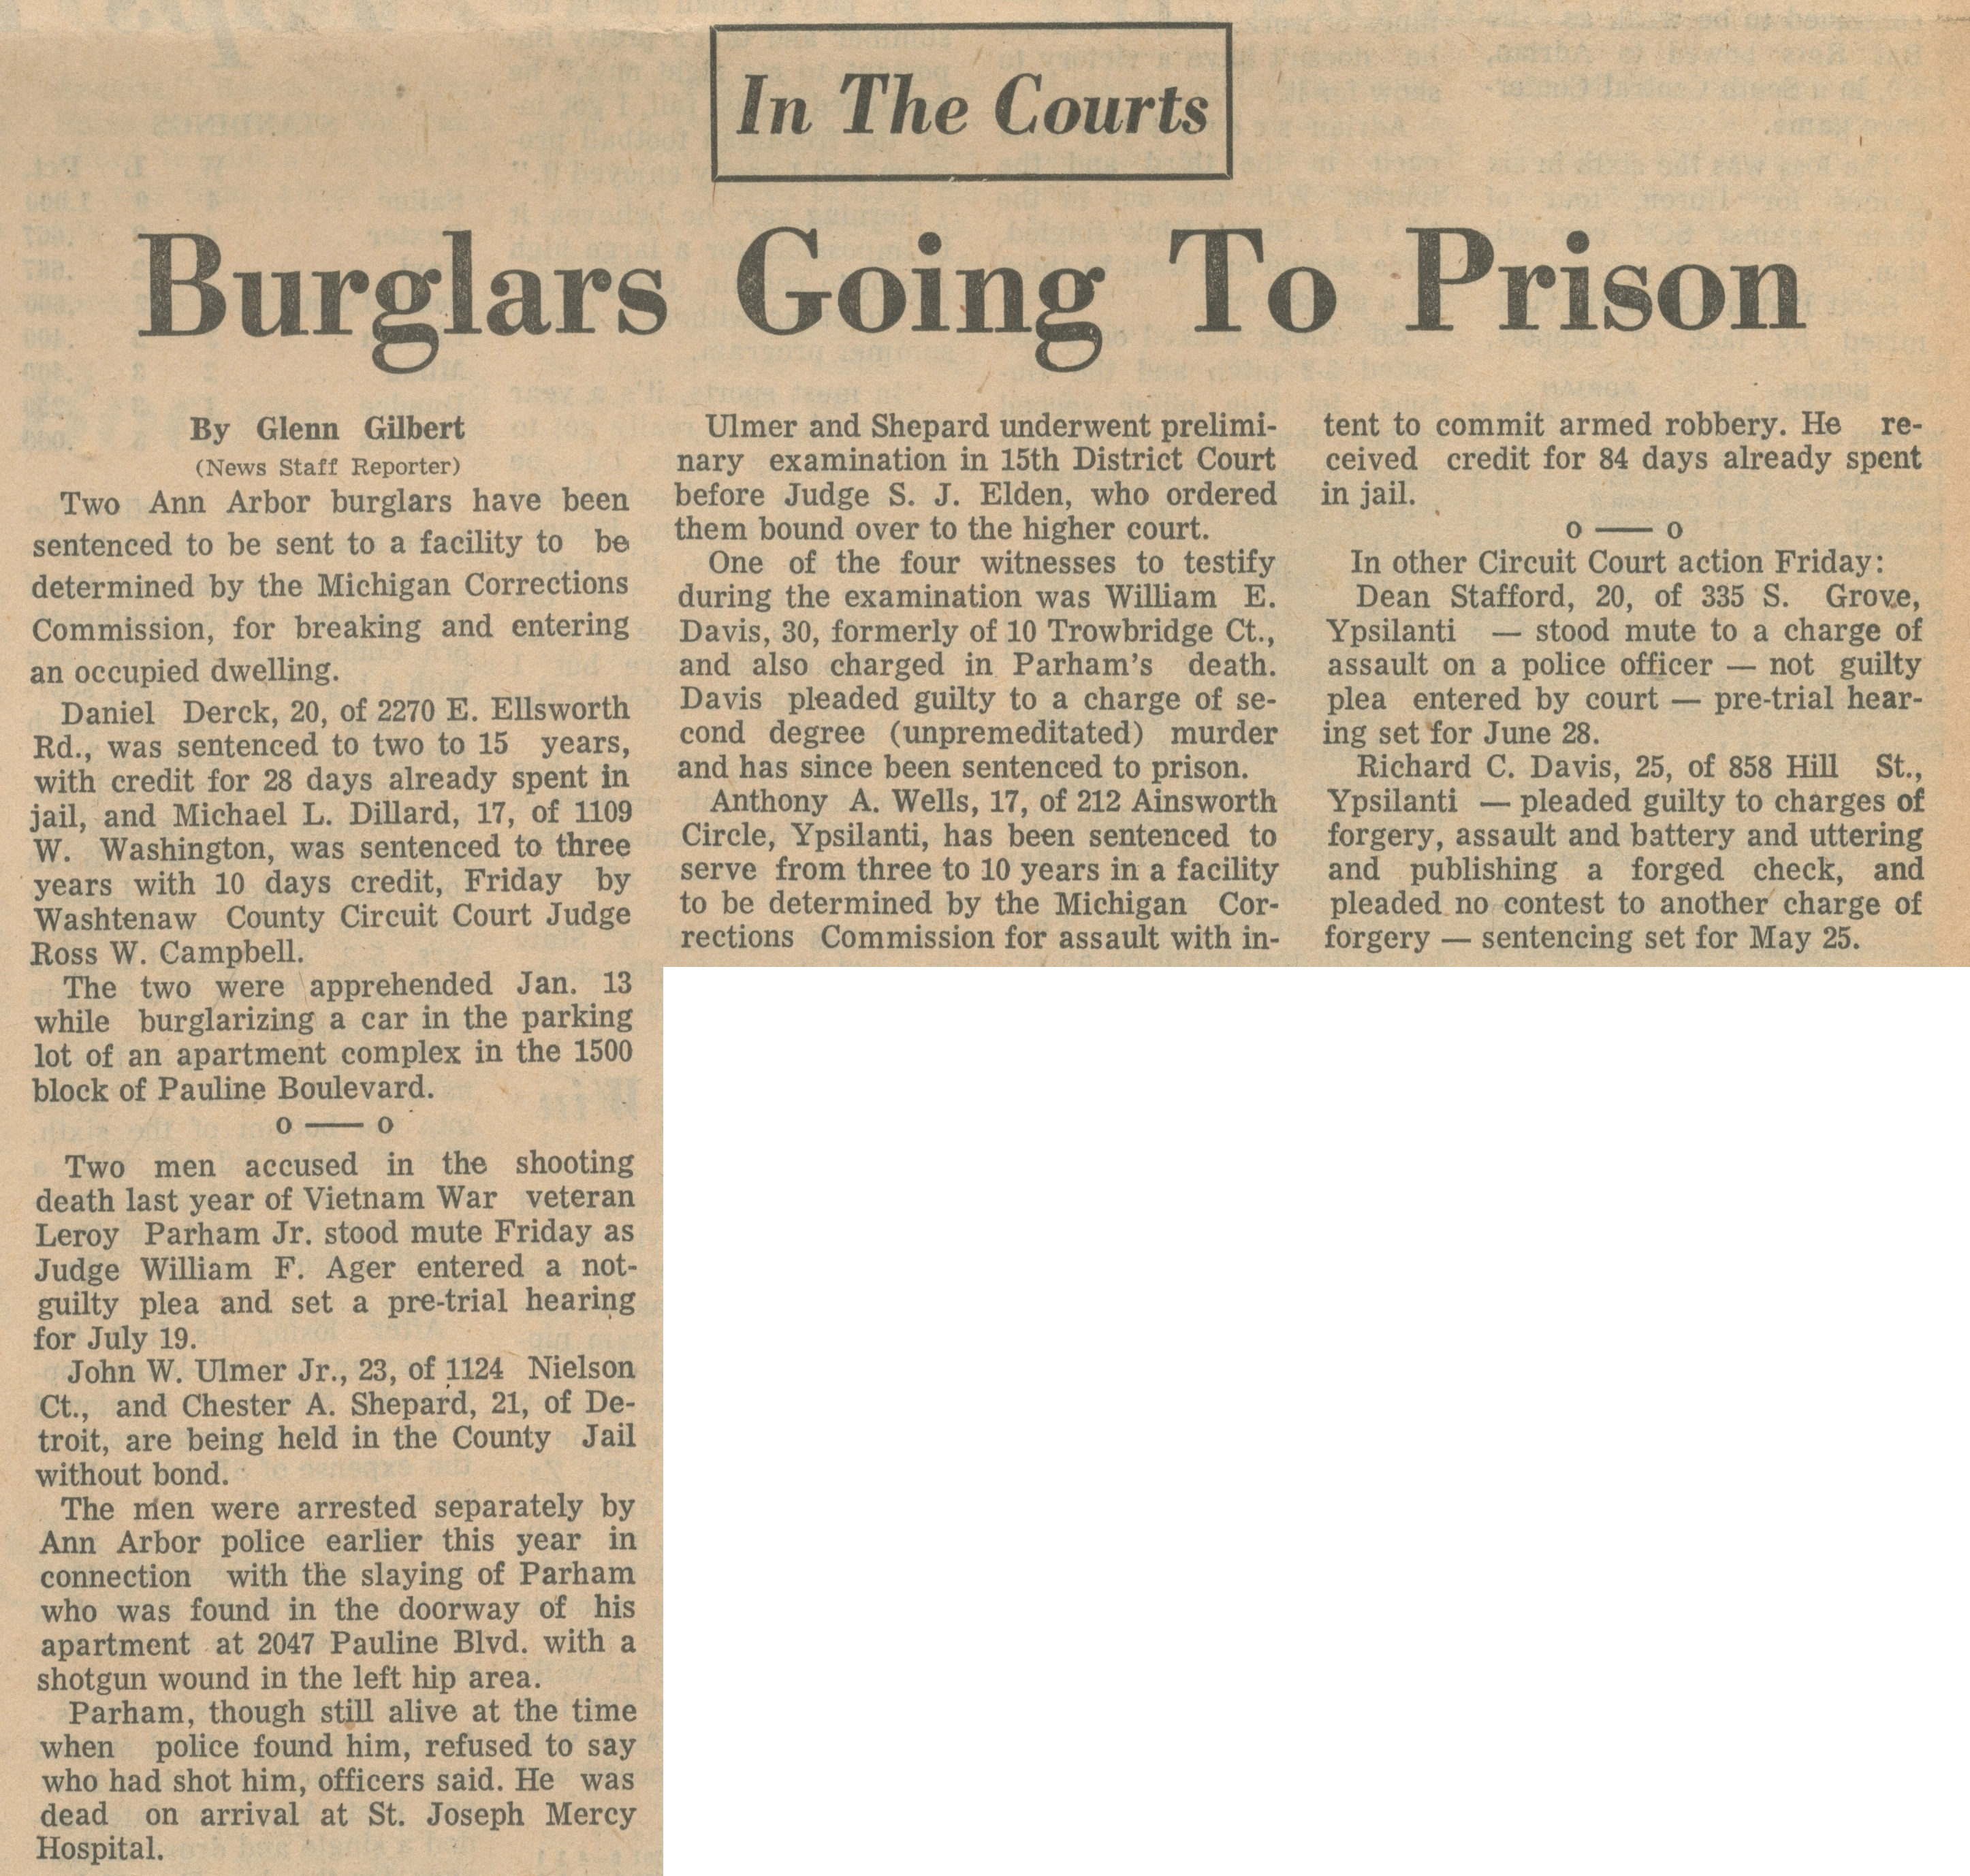 In The Courts - Burglars Going To Prison image